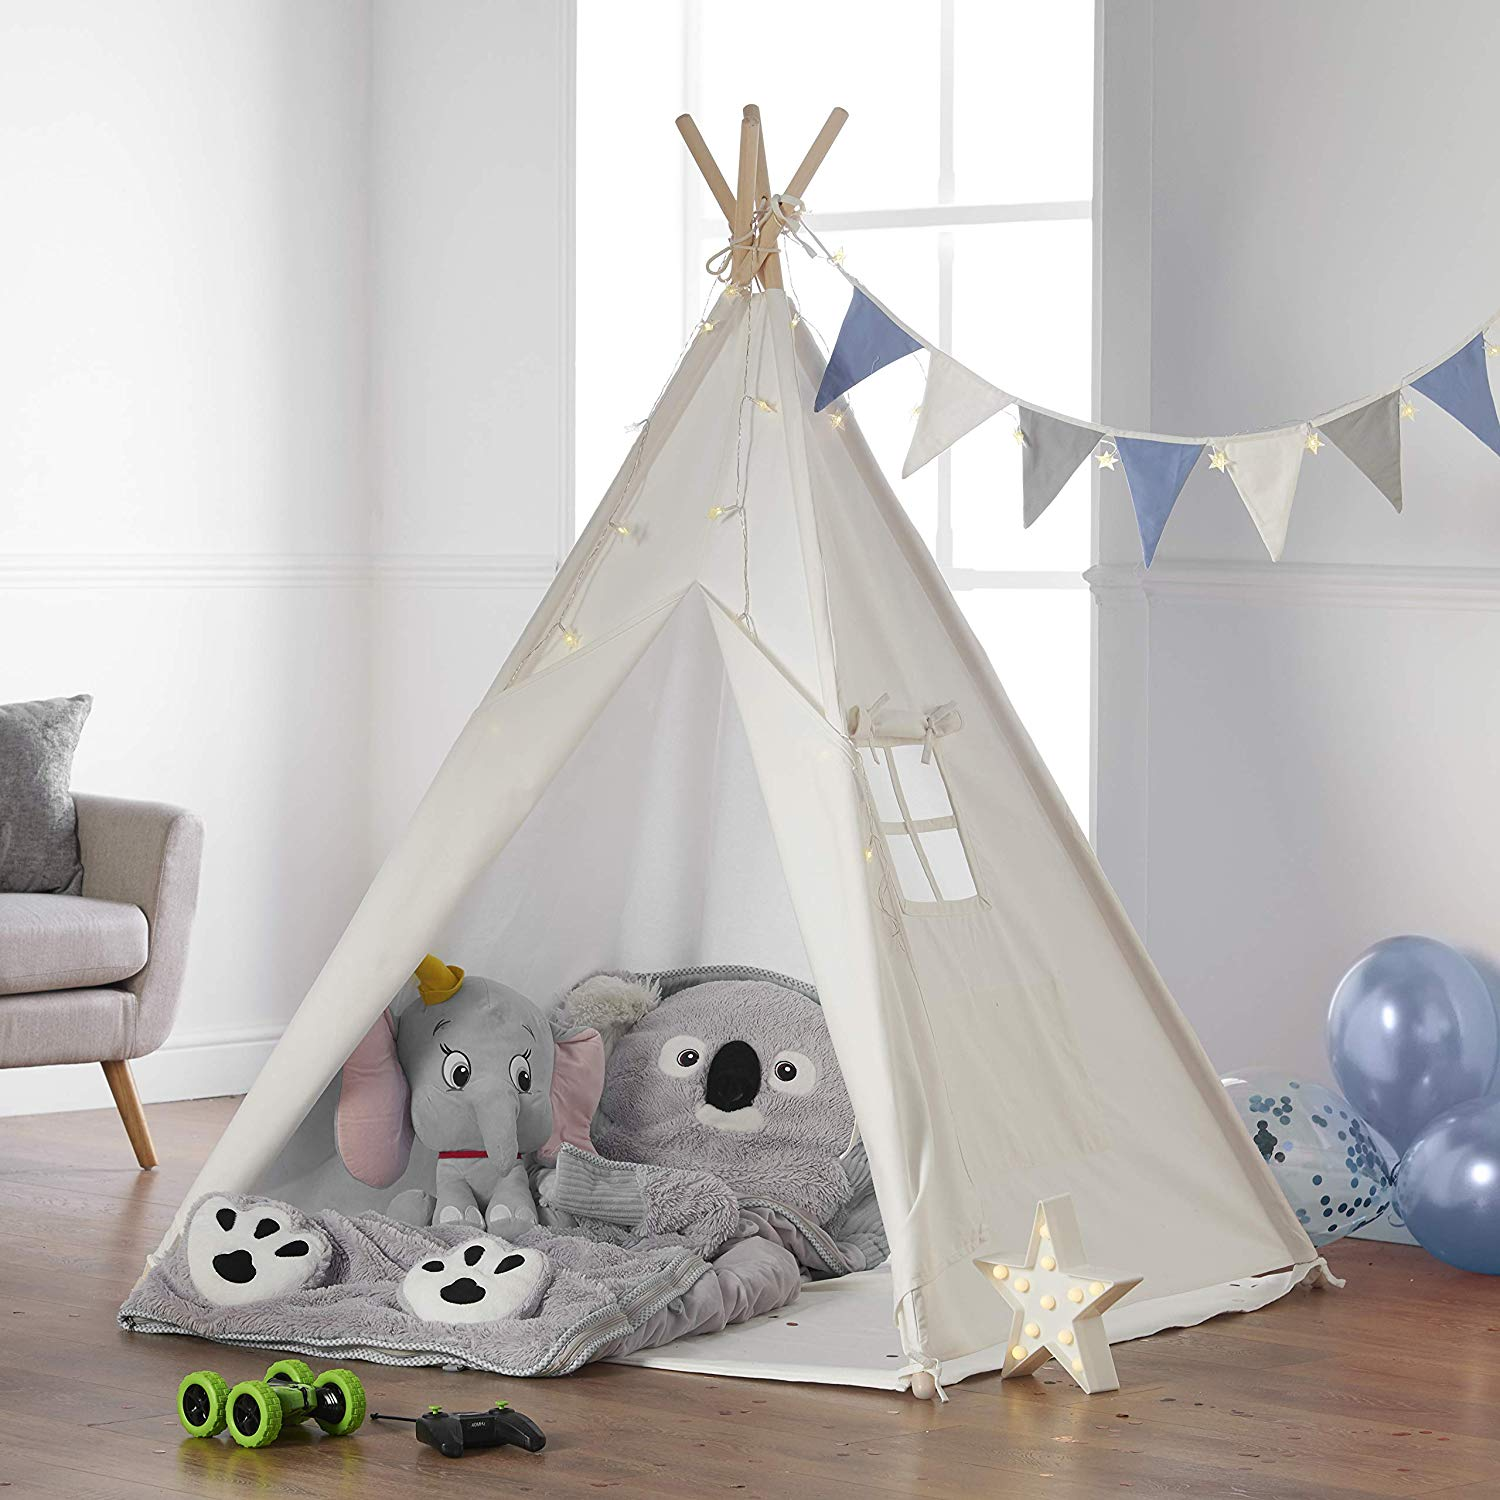 Haus Projekt Kids TeePee (Blue Bunting) with Fairy Lights, Bunting & Free Waterproof Base 160cm Tipi Tent